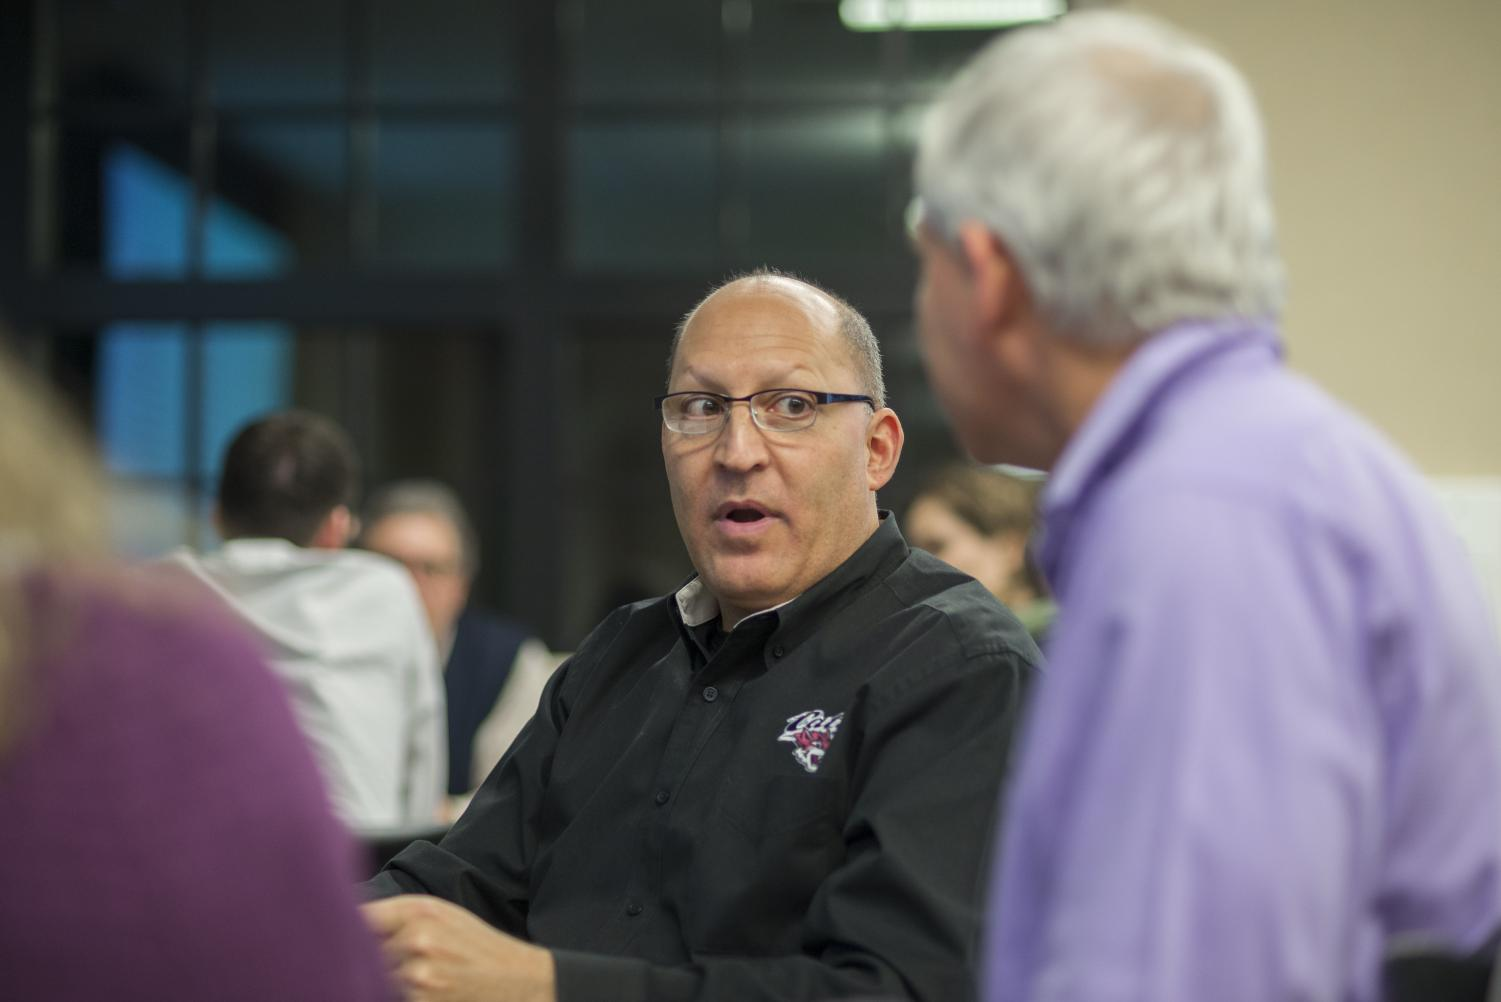 Jay Friedman works with alumni at Chico State and attended the strategic planning meeting Wednesday night. Photo courtesy Ryan Mccasland